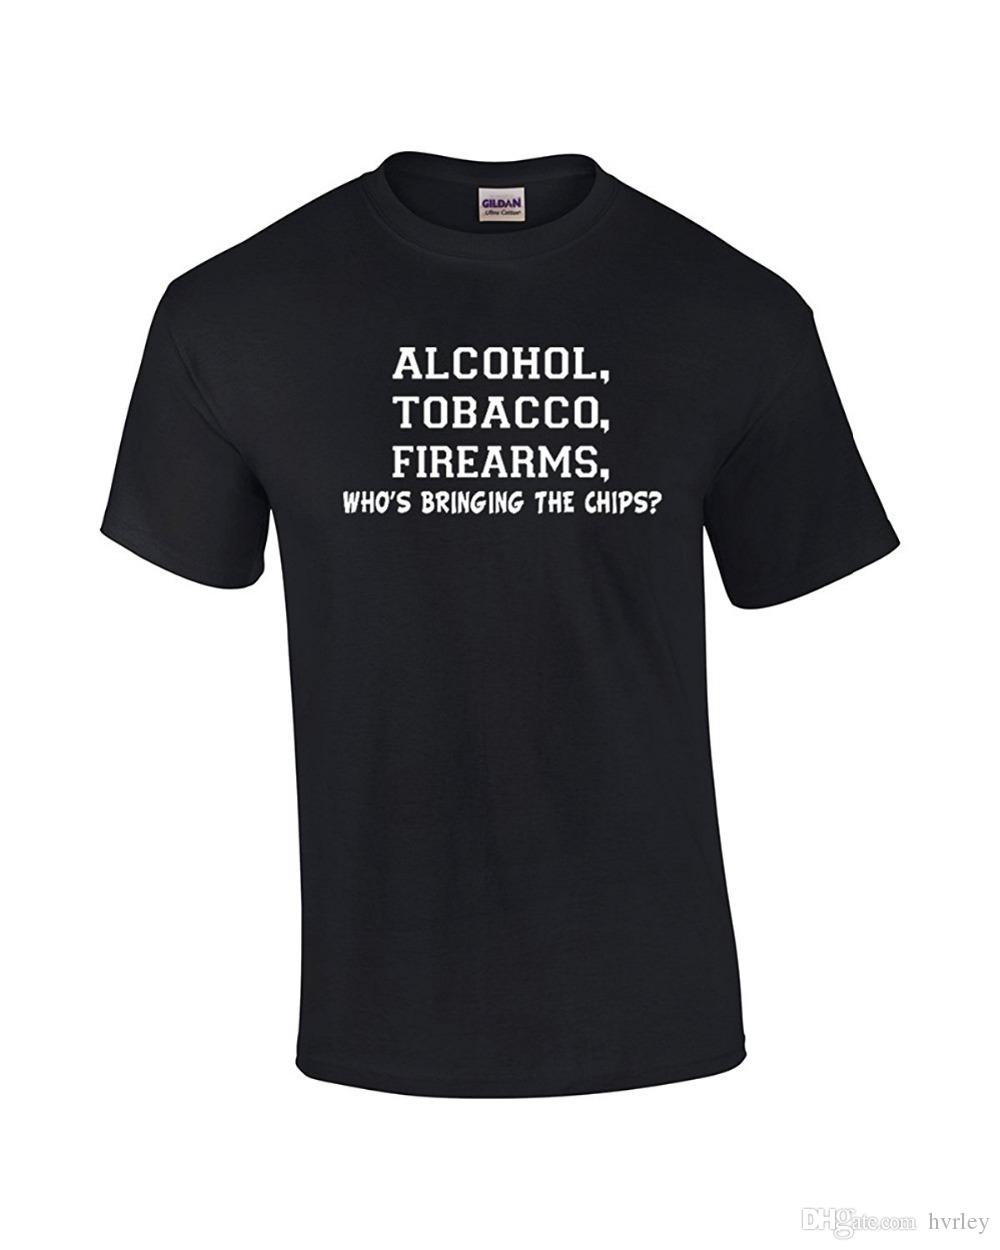 85c336a89 2018 New Short Sleeve ATF T Shirt Alcohol Tobacco Firearms Who'S Bringing  The Chips? Tops Tees Printing T Shirt Design Online Vintage Tees From  Hvrley, ...